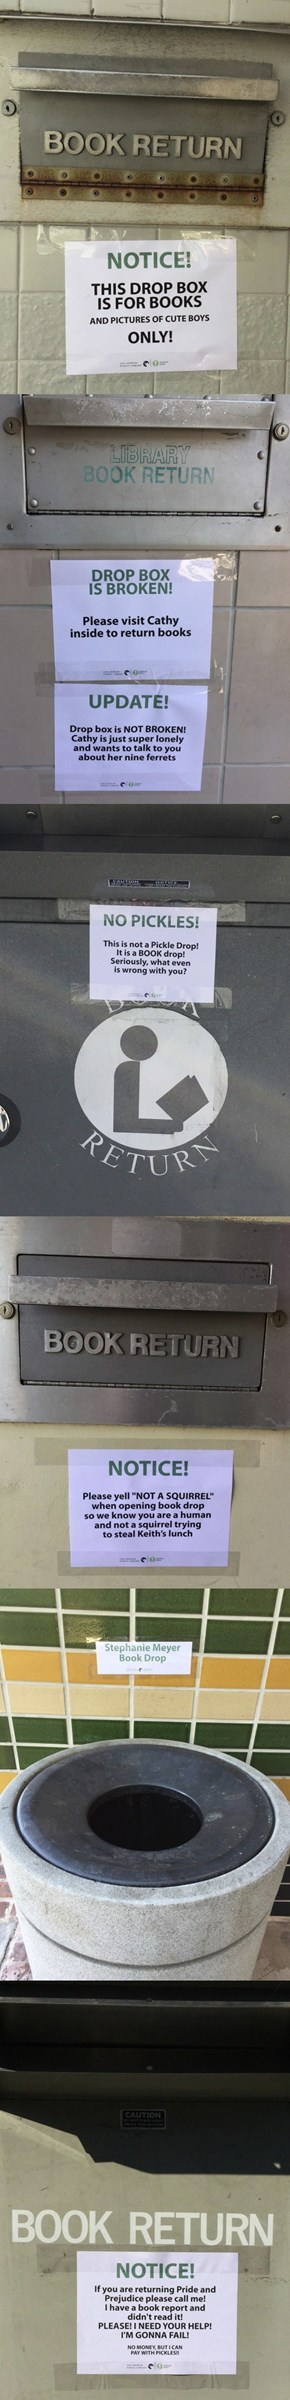 I Wish This Sassy Book Drop Was at My Local Library